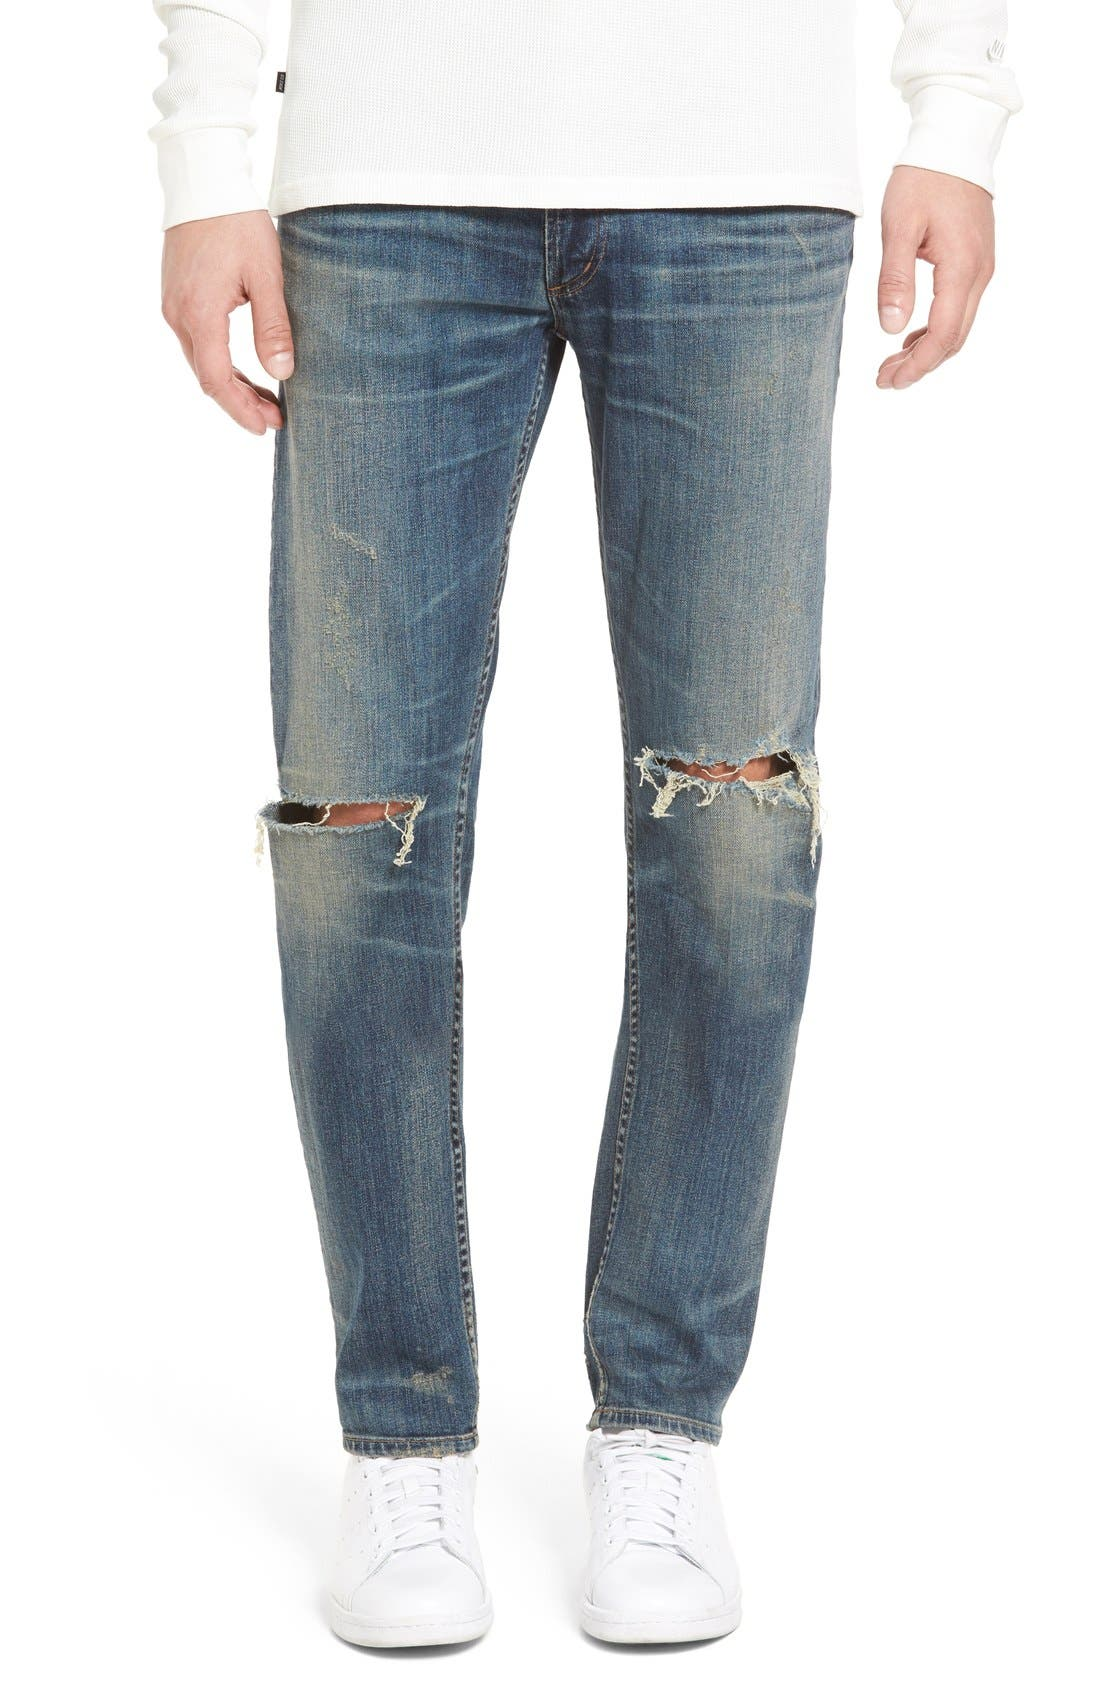 Bowery Slim Fit Jeans,                         Main,                         color, Weston